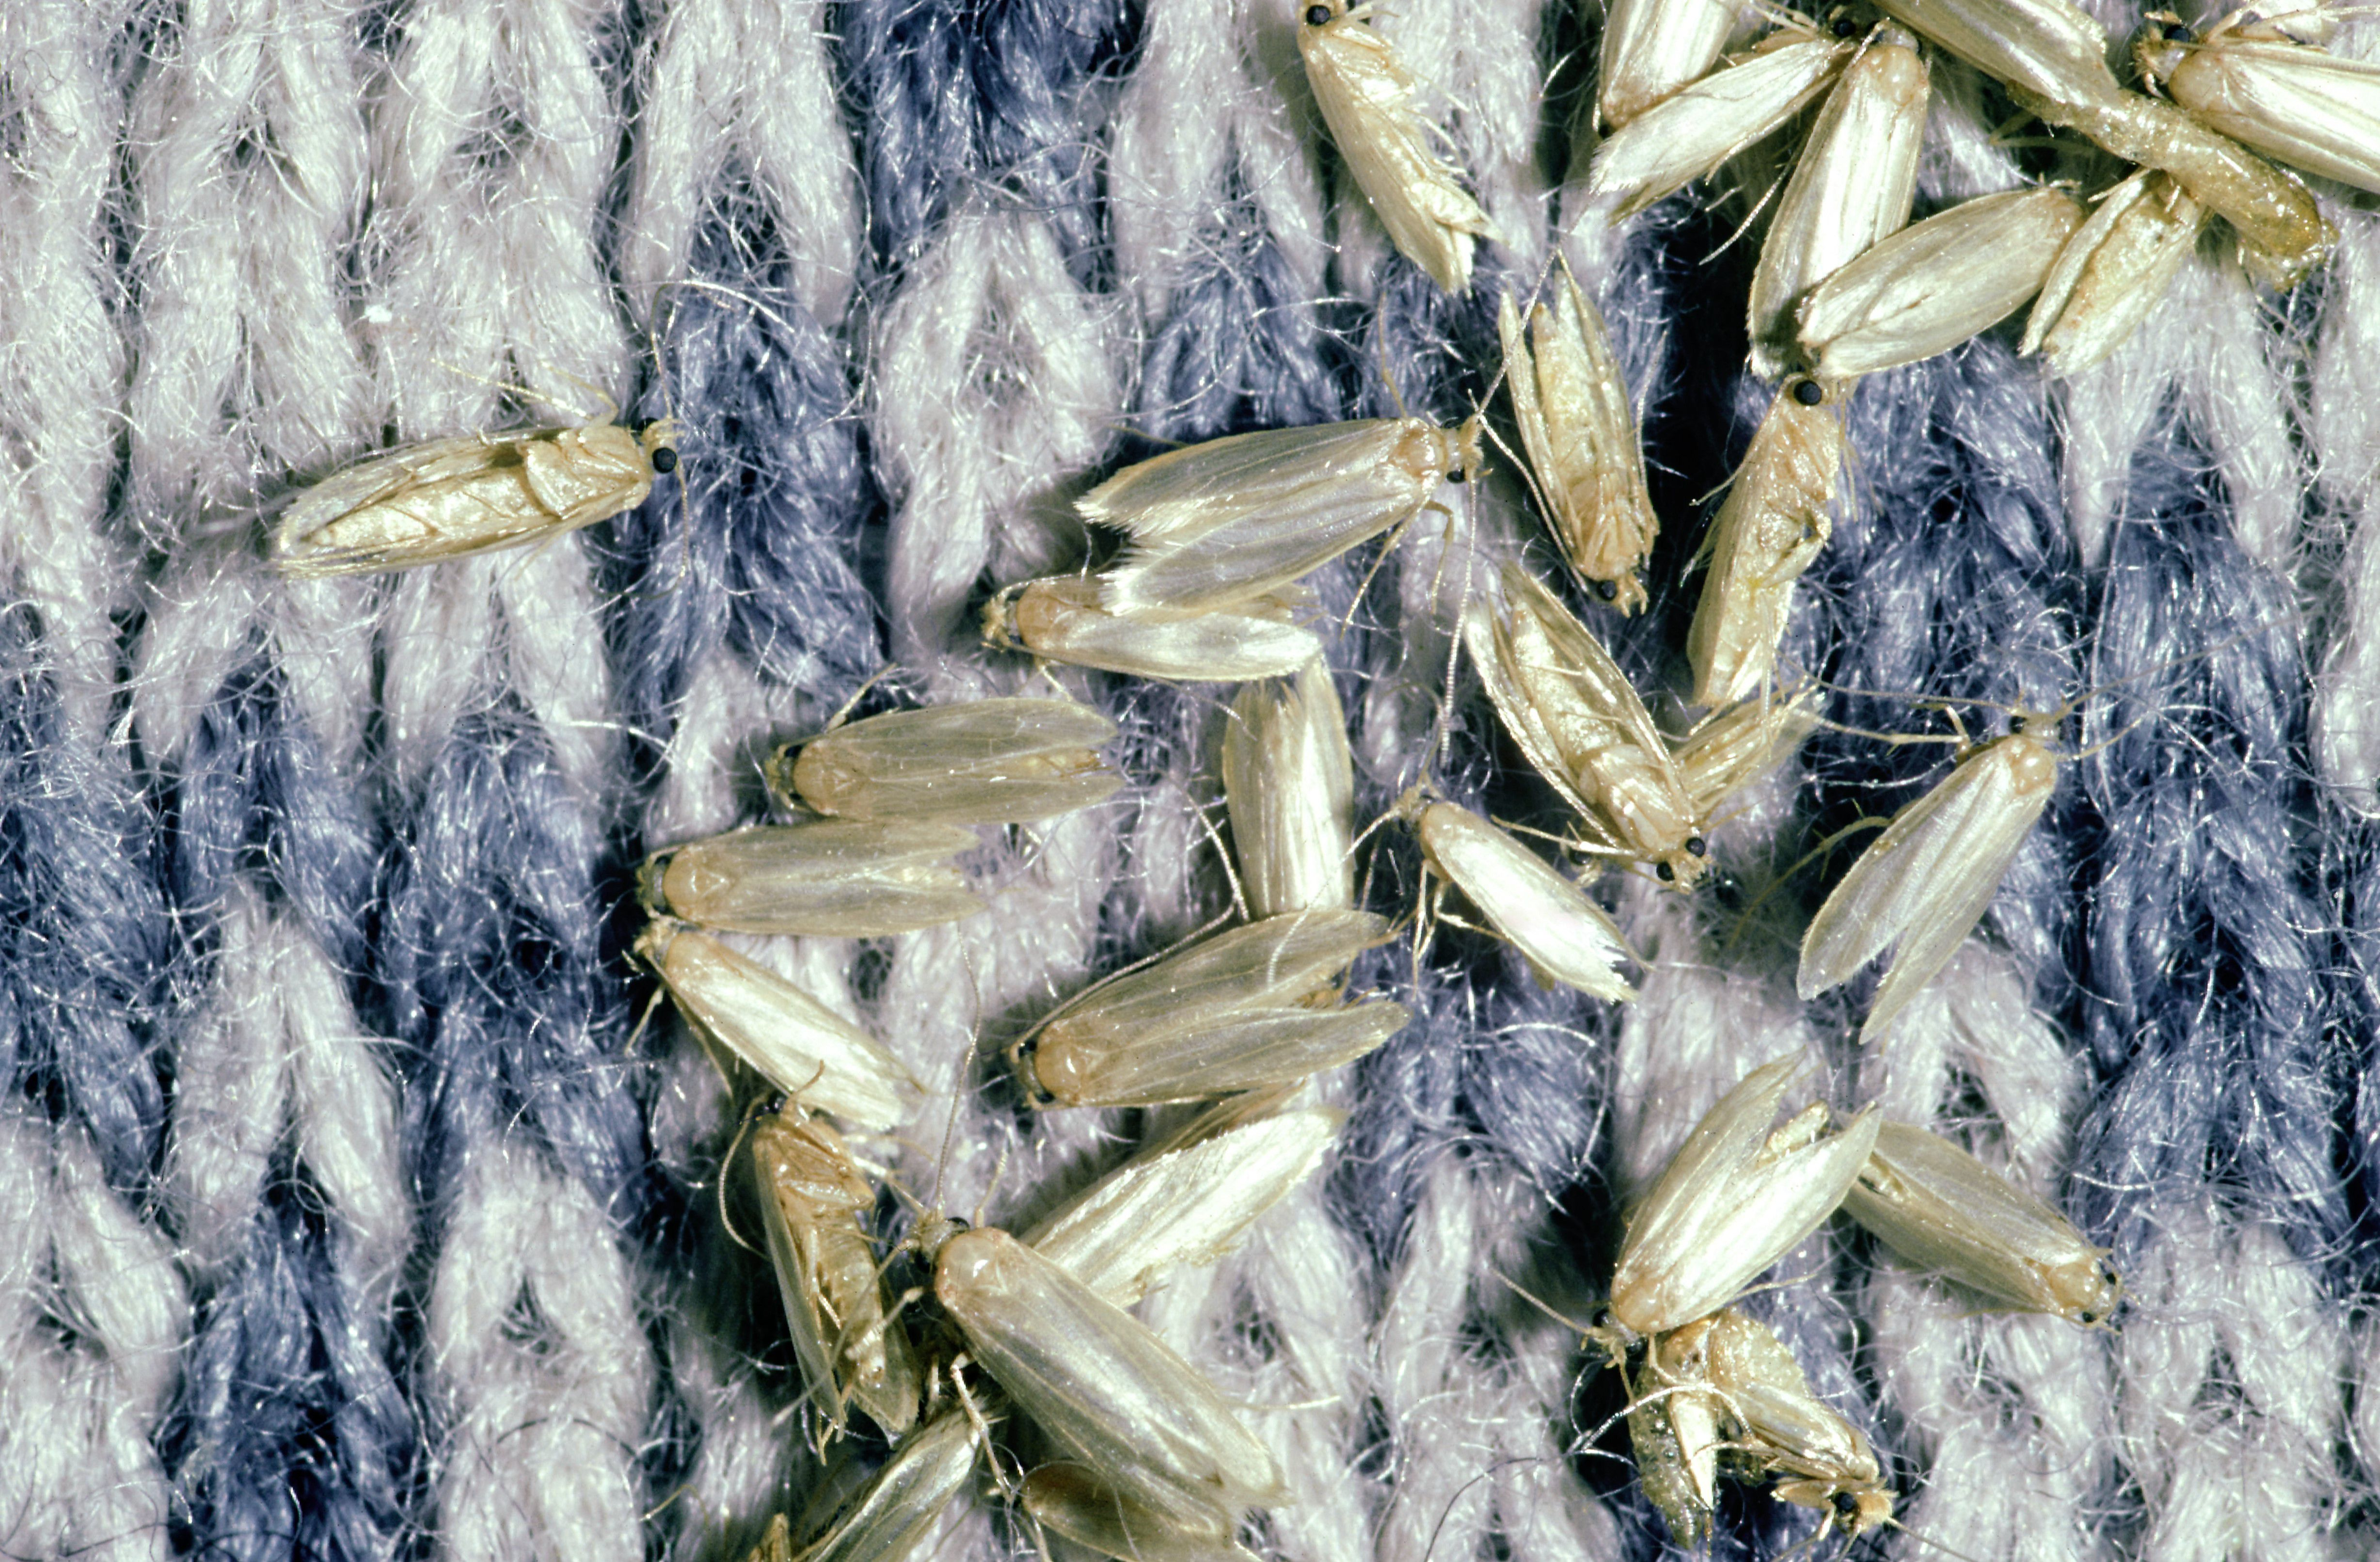 Dozens of webbing clothes moths on a sweater.